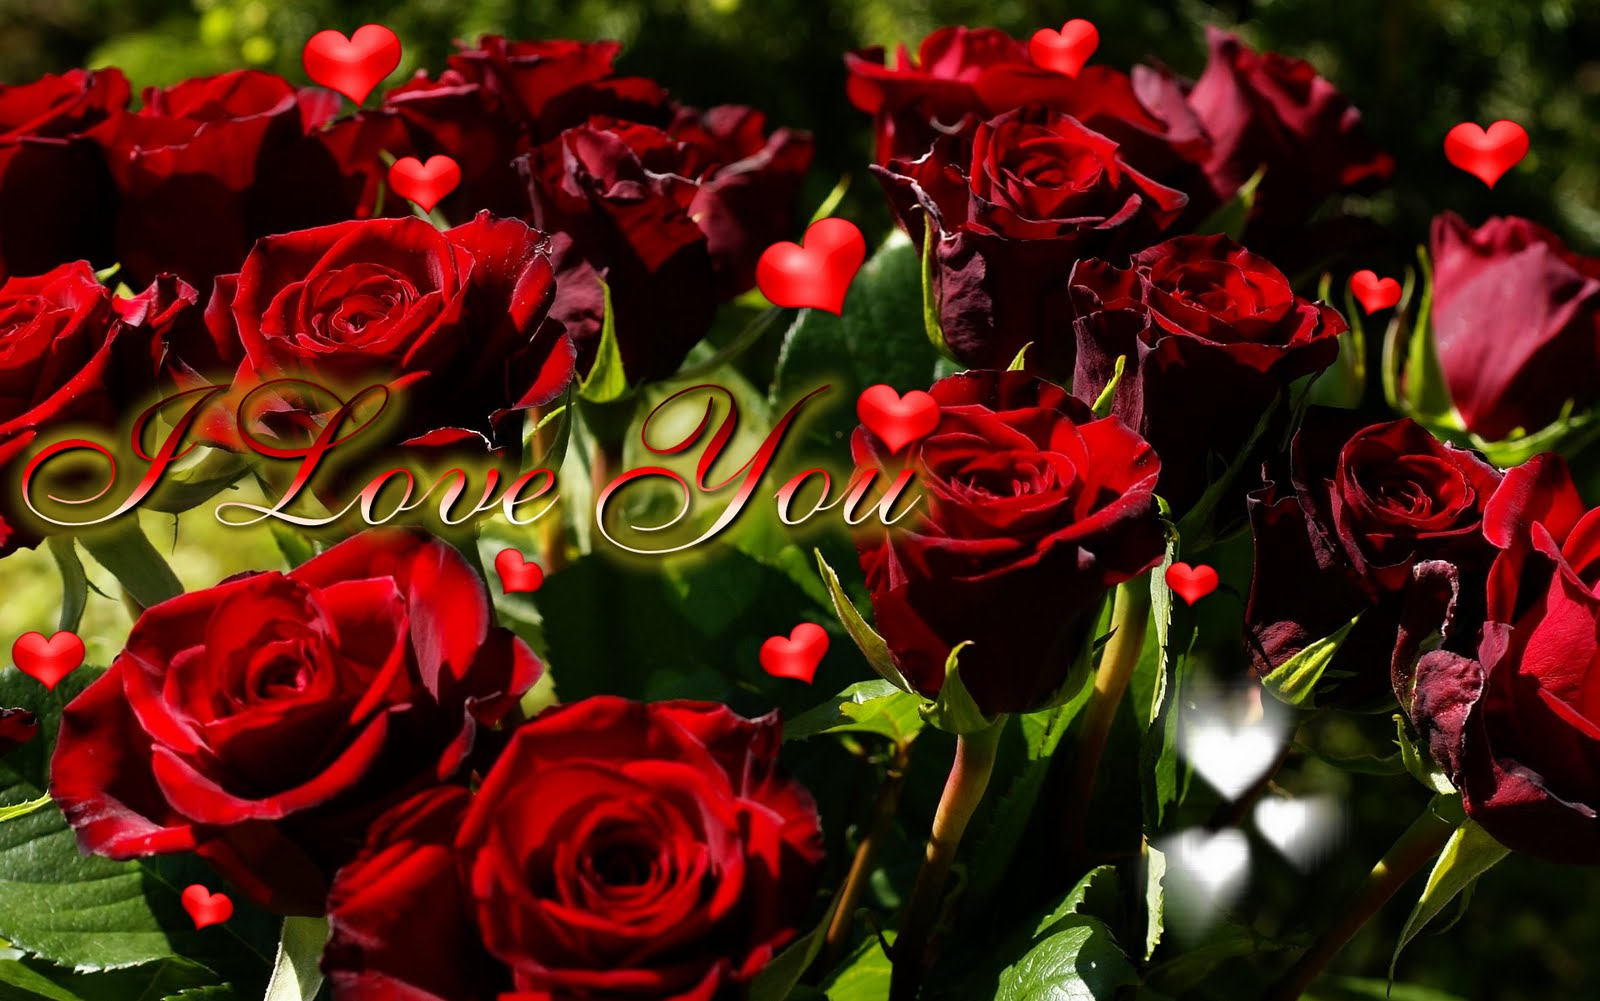 Hearts and roses wallpapers free images fun - Pics of roses and hearts ...